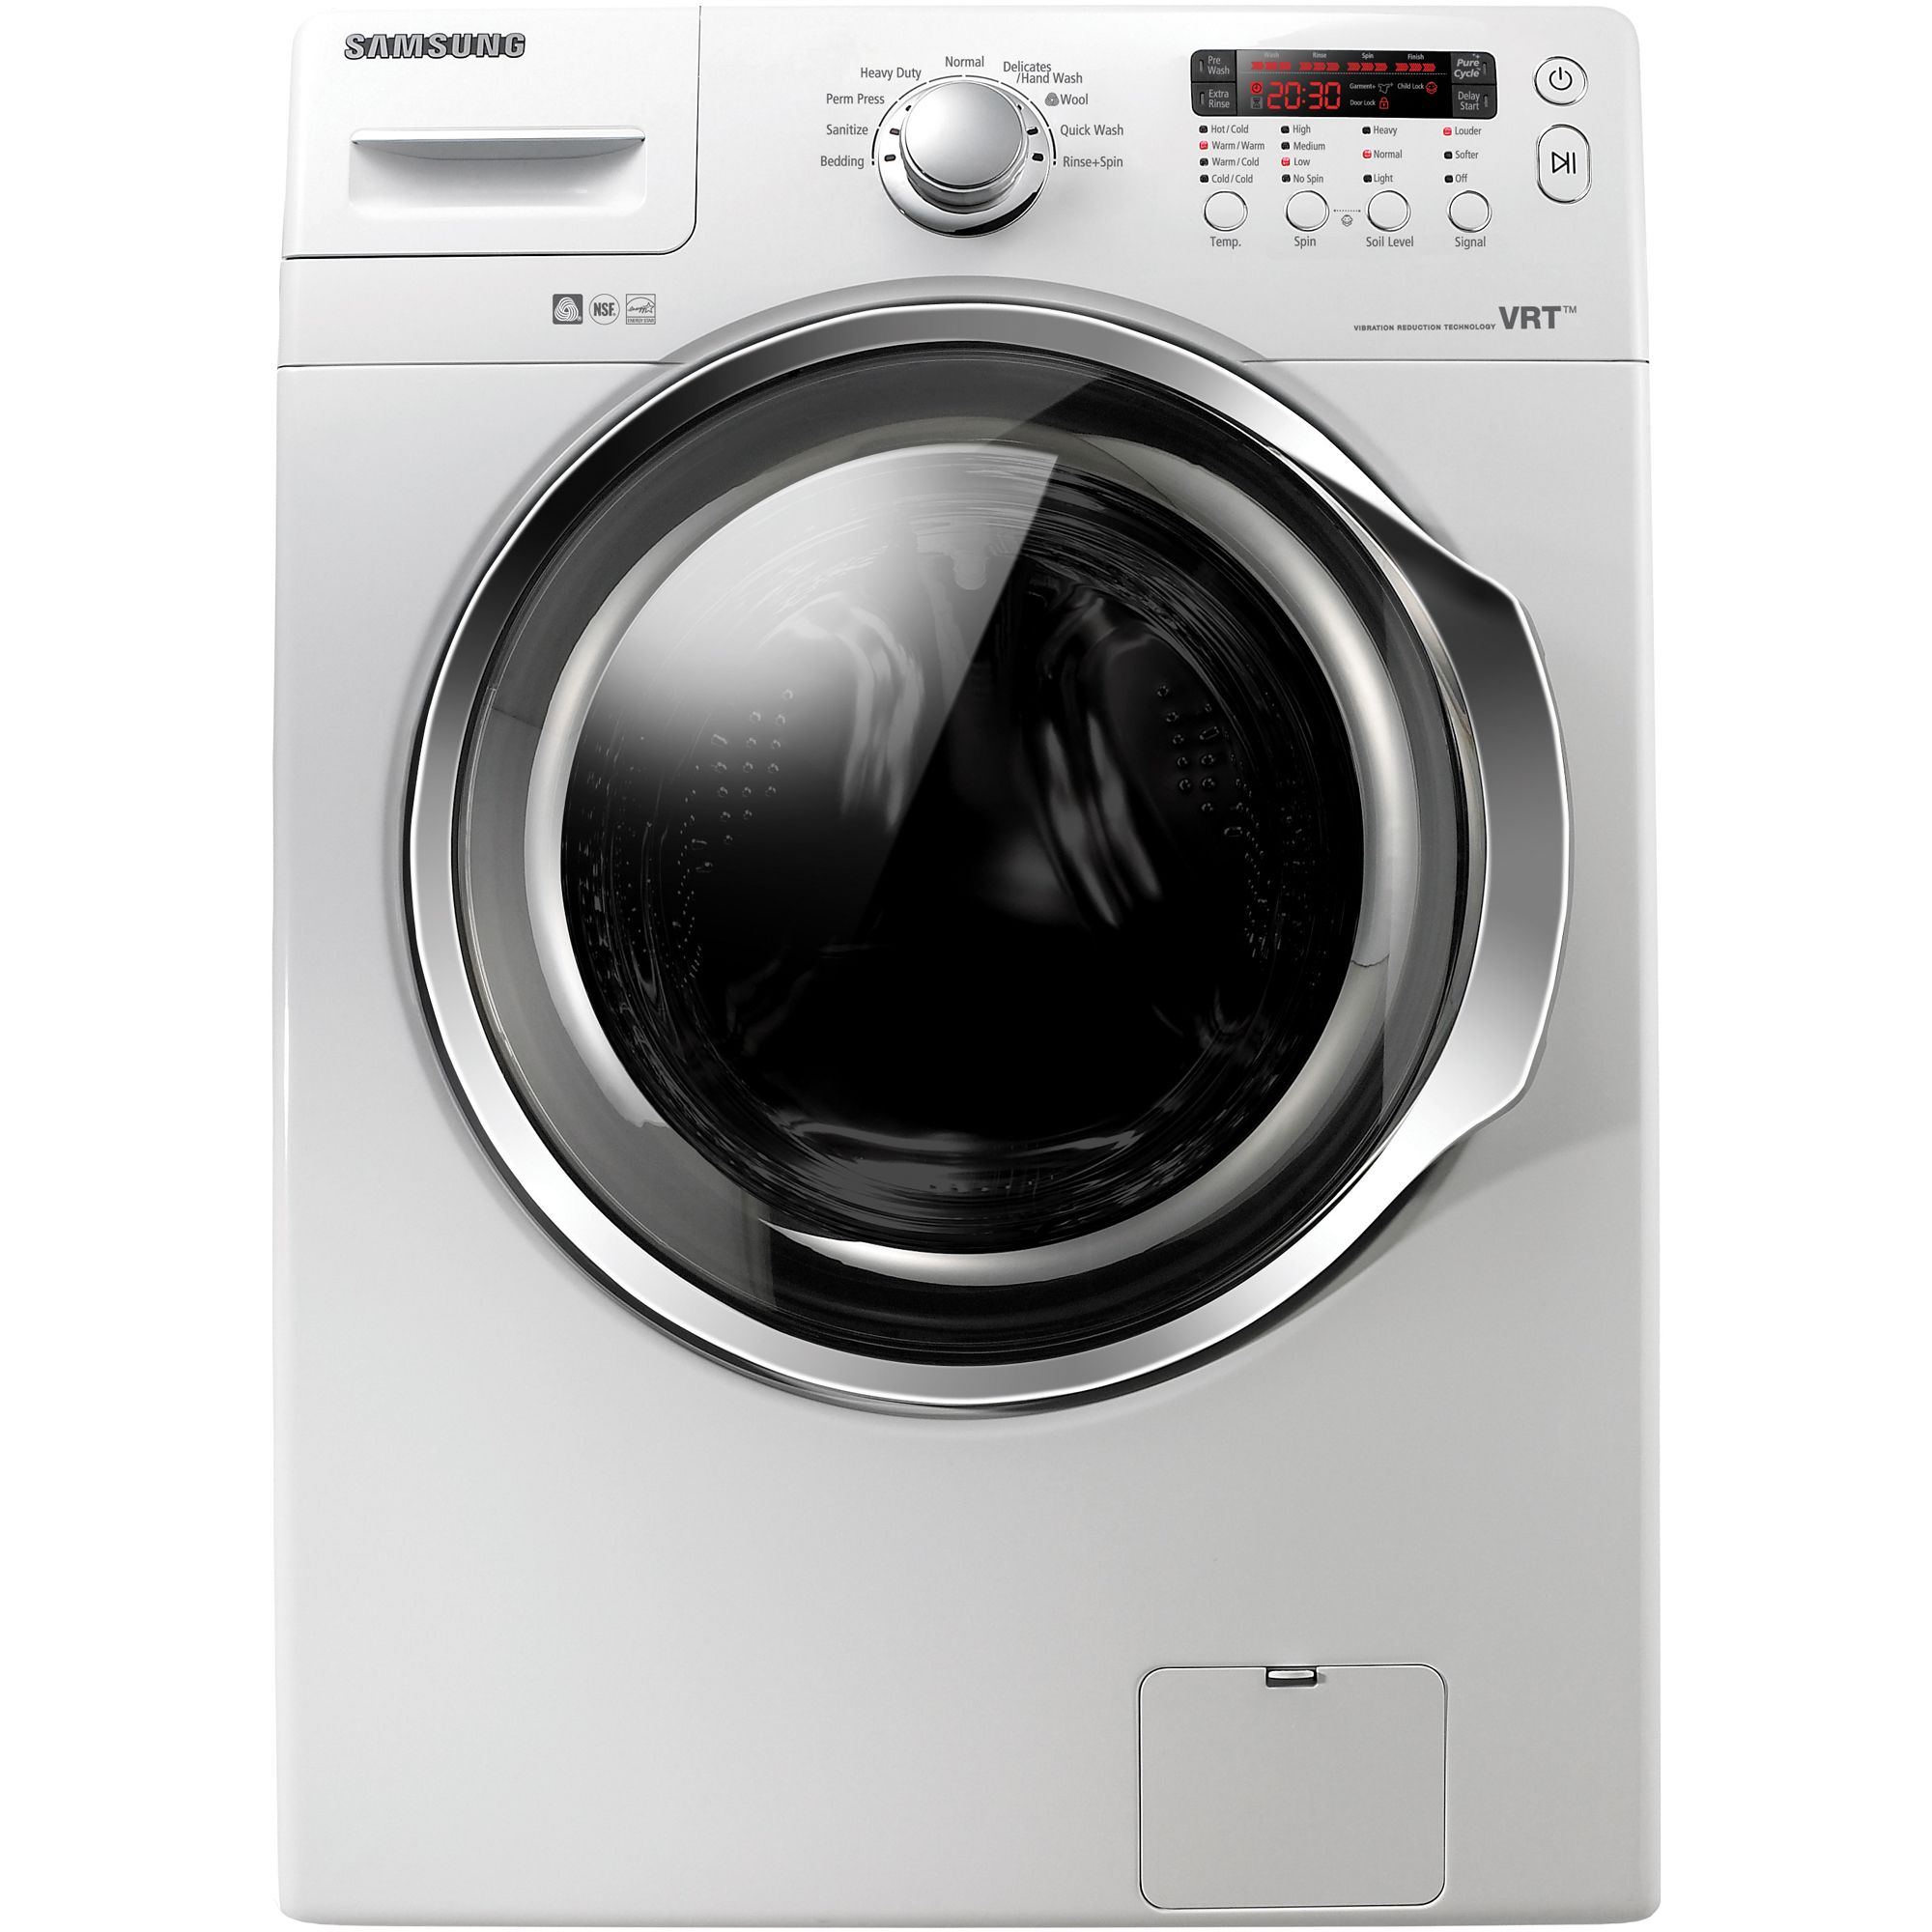 Samsung Electric Washer Samsung Free Engine Image For